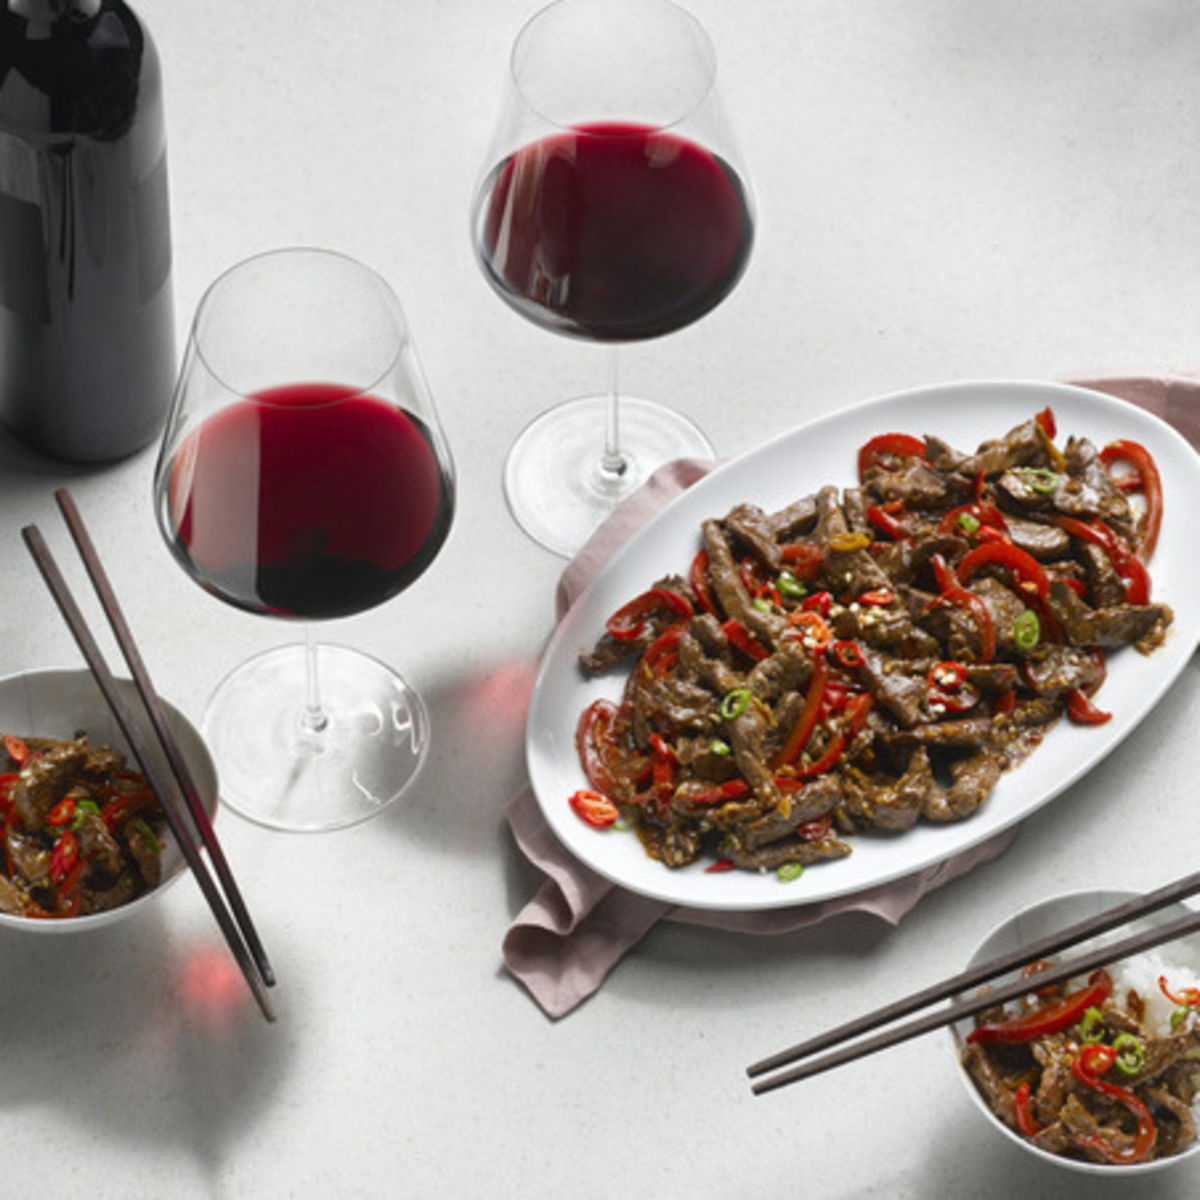 The picture shows the dish sichuan meat and two glasses of red wine.